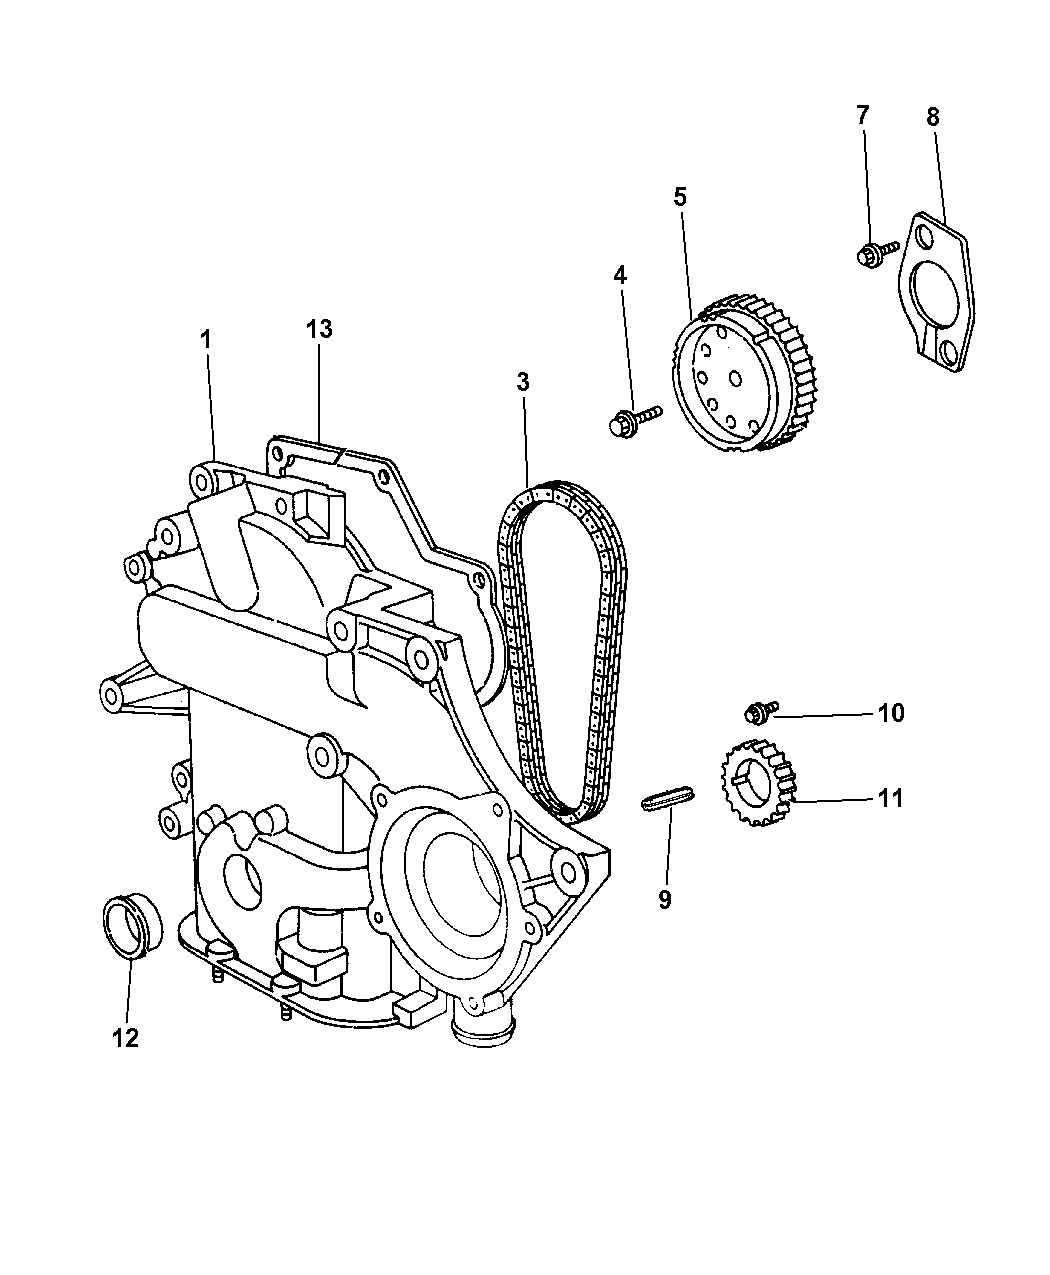 2003 Chrysler Voyager Timing Chain & Cover - Diagram 1